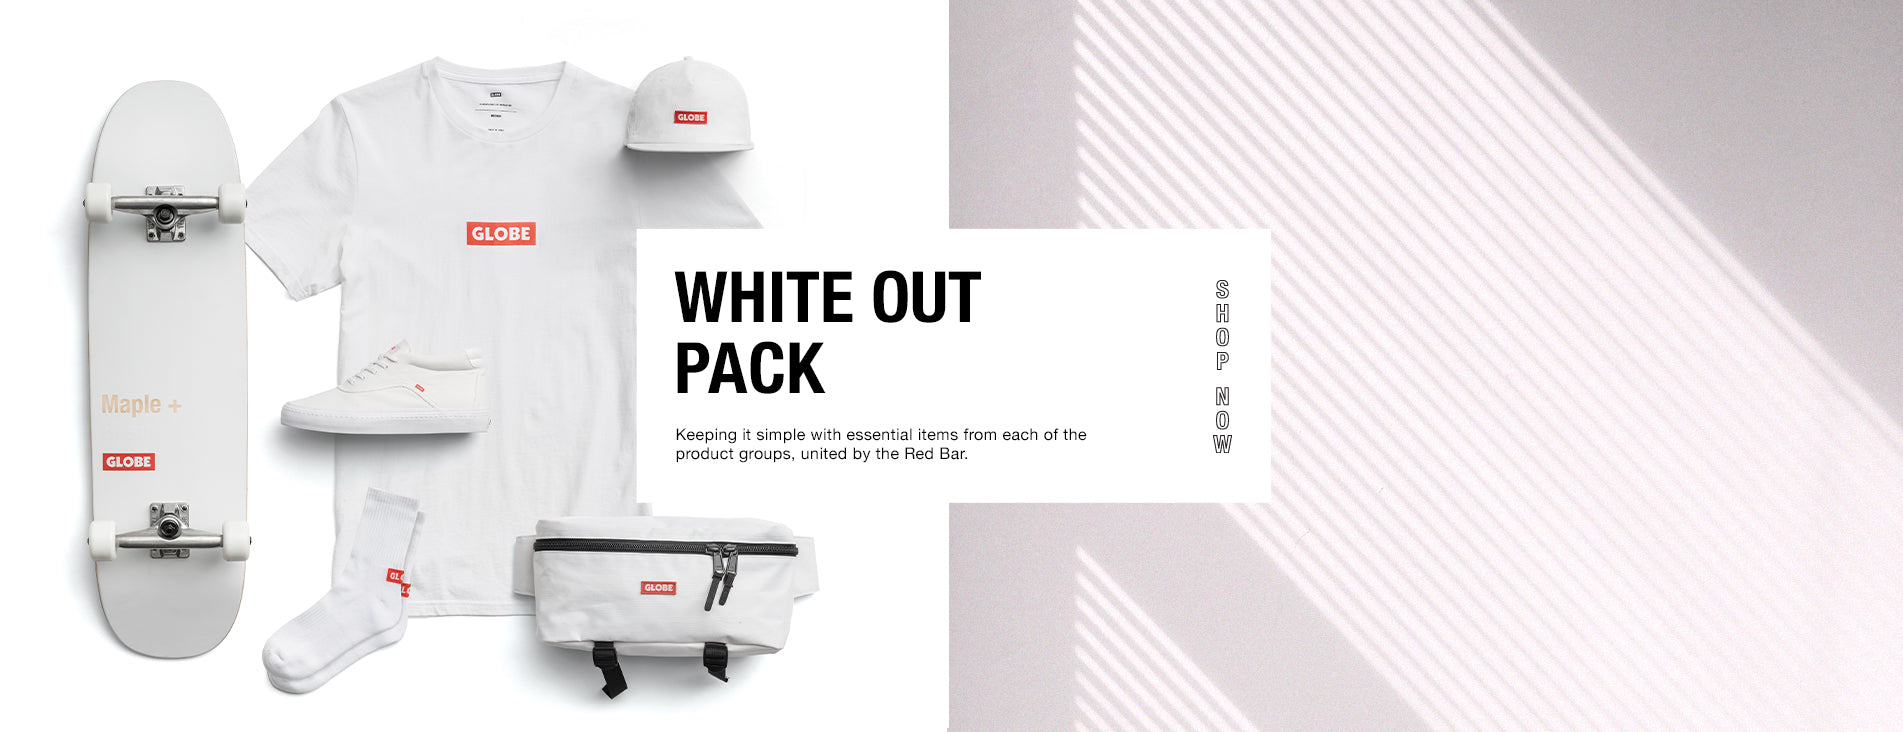 Globe Brand White out collection